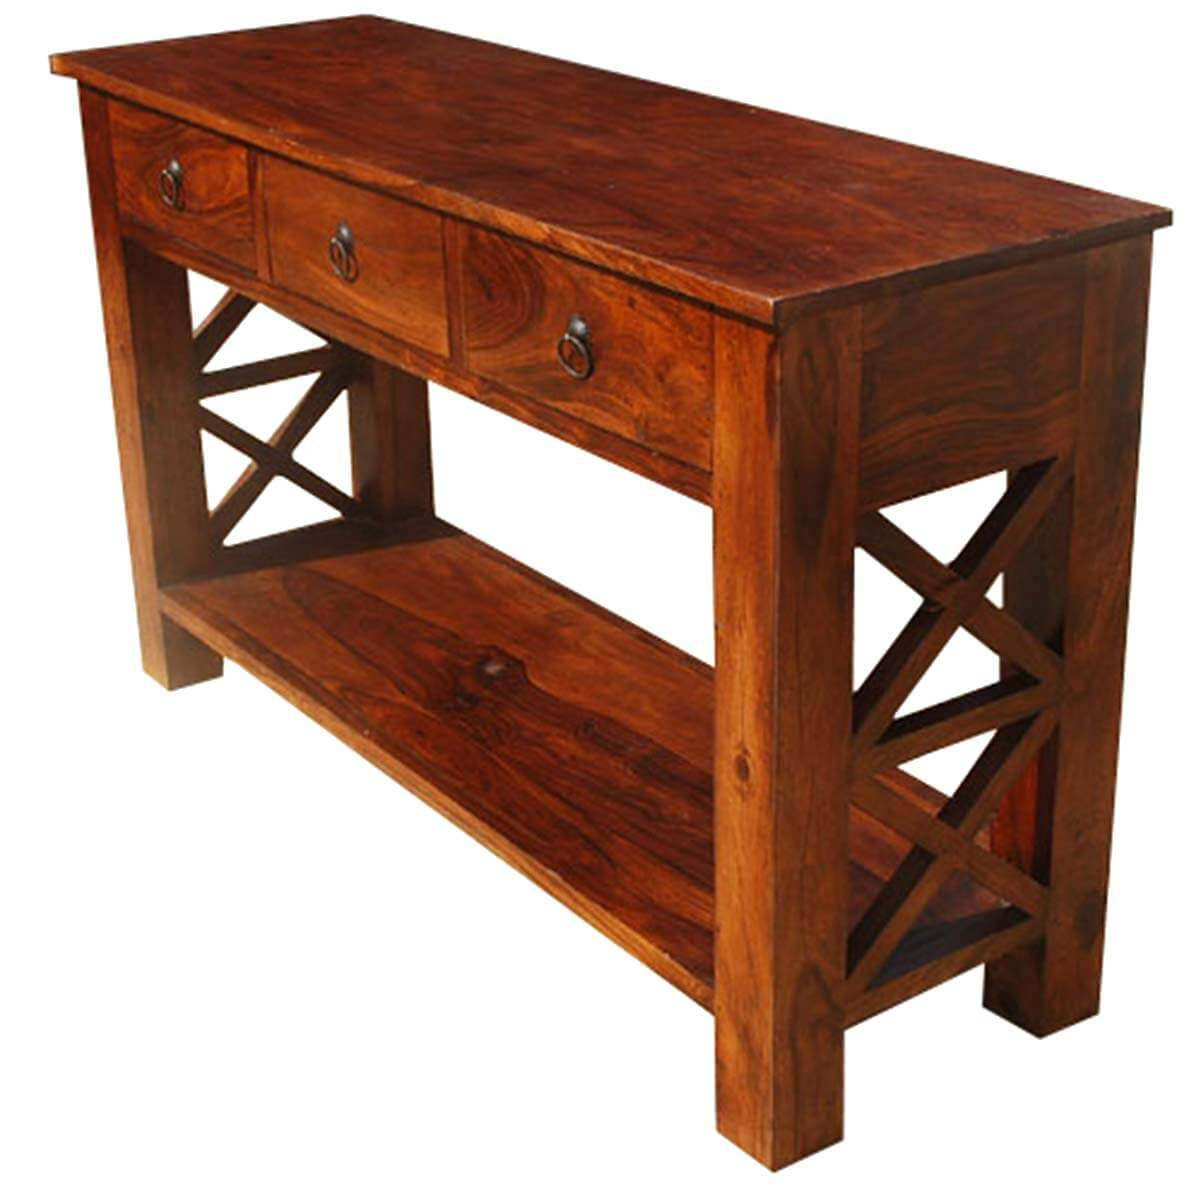 Solid Wood Oklahoma Farmhouse Console Table w 3 Storage Drawers